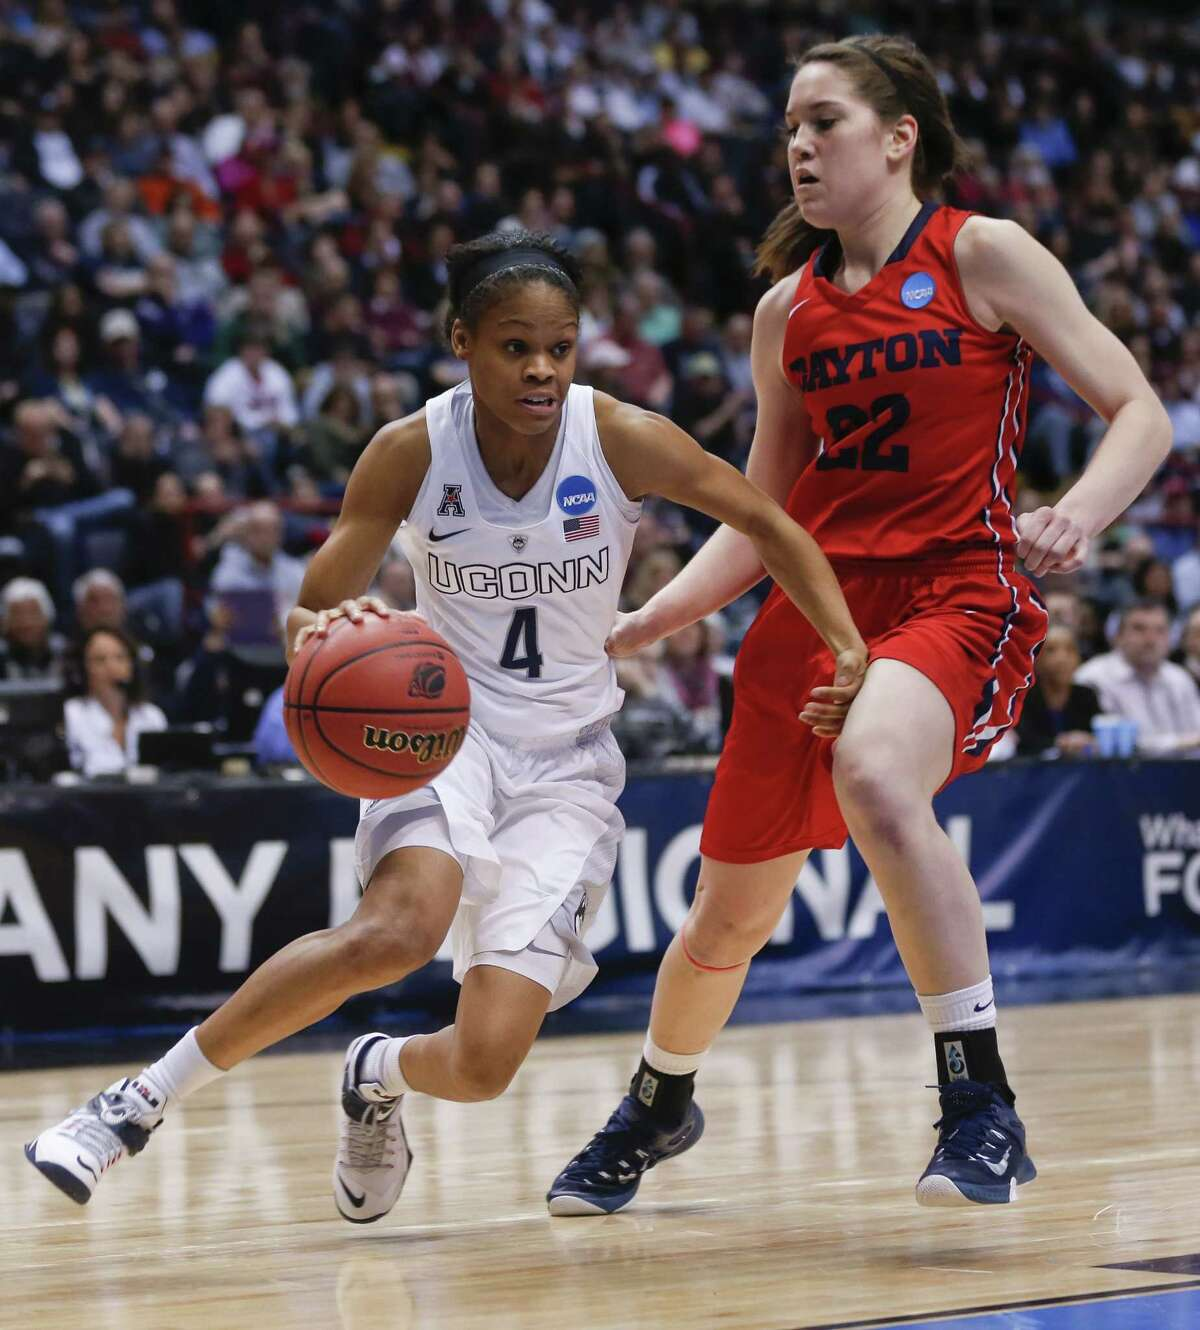 UConn guard Moriah Jefferson drives past Dayton guard Kelley Austria during Monday's regional final in Albany, N.Y.